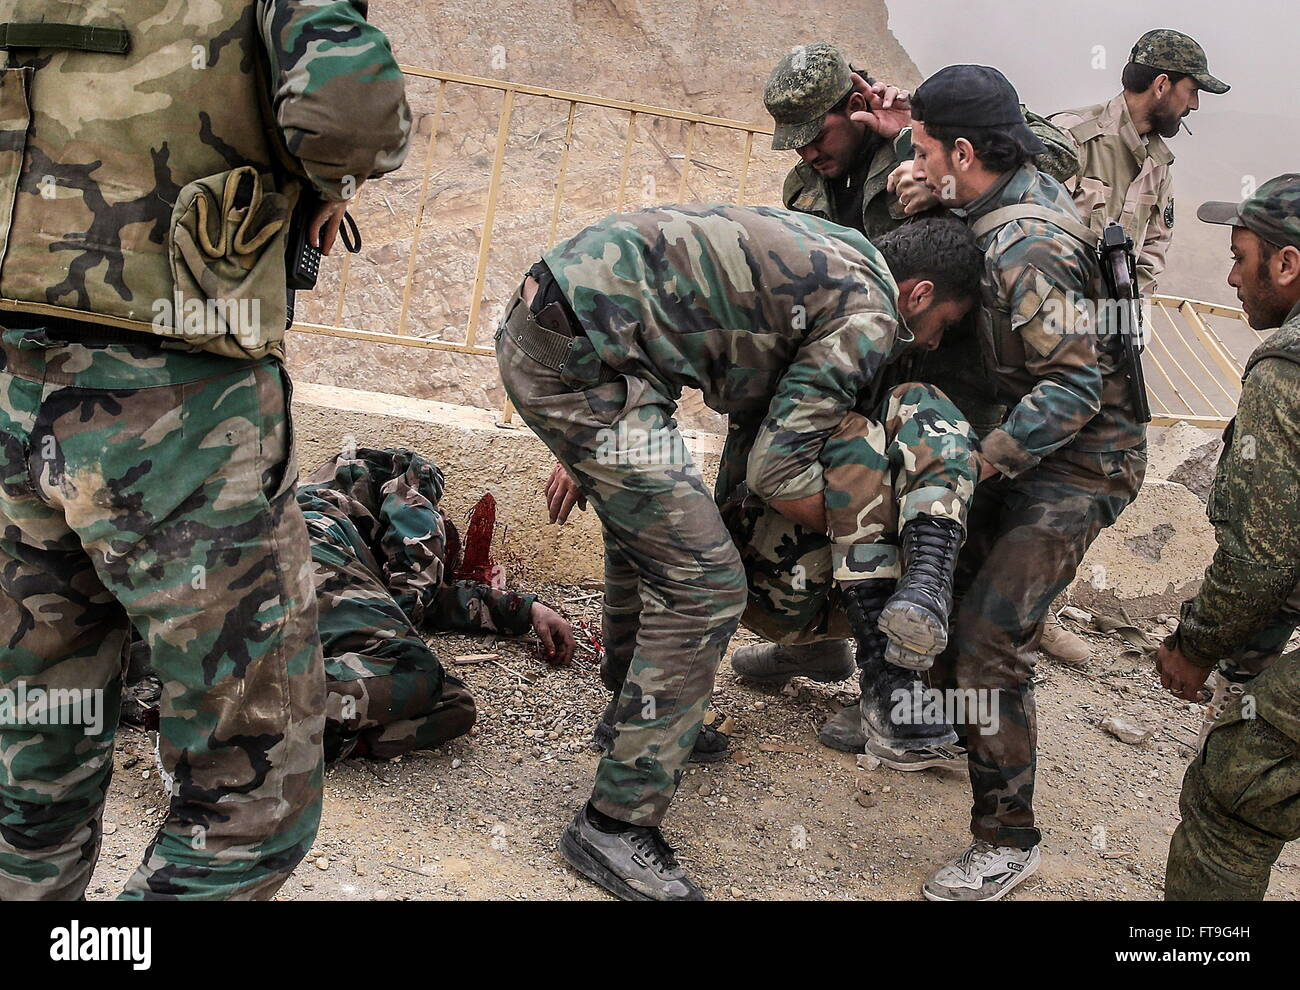 Palmyra, Syria. 26th Mar, 2016. Injured soldiers of the Syrian government army at the Fahkr ad-Din al-Maani castle Stock Photo